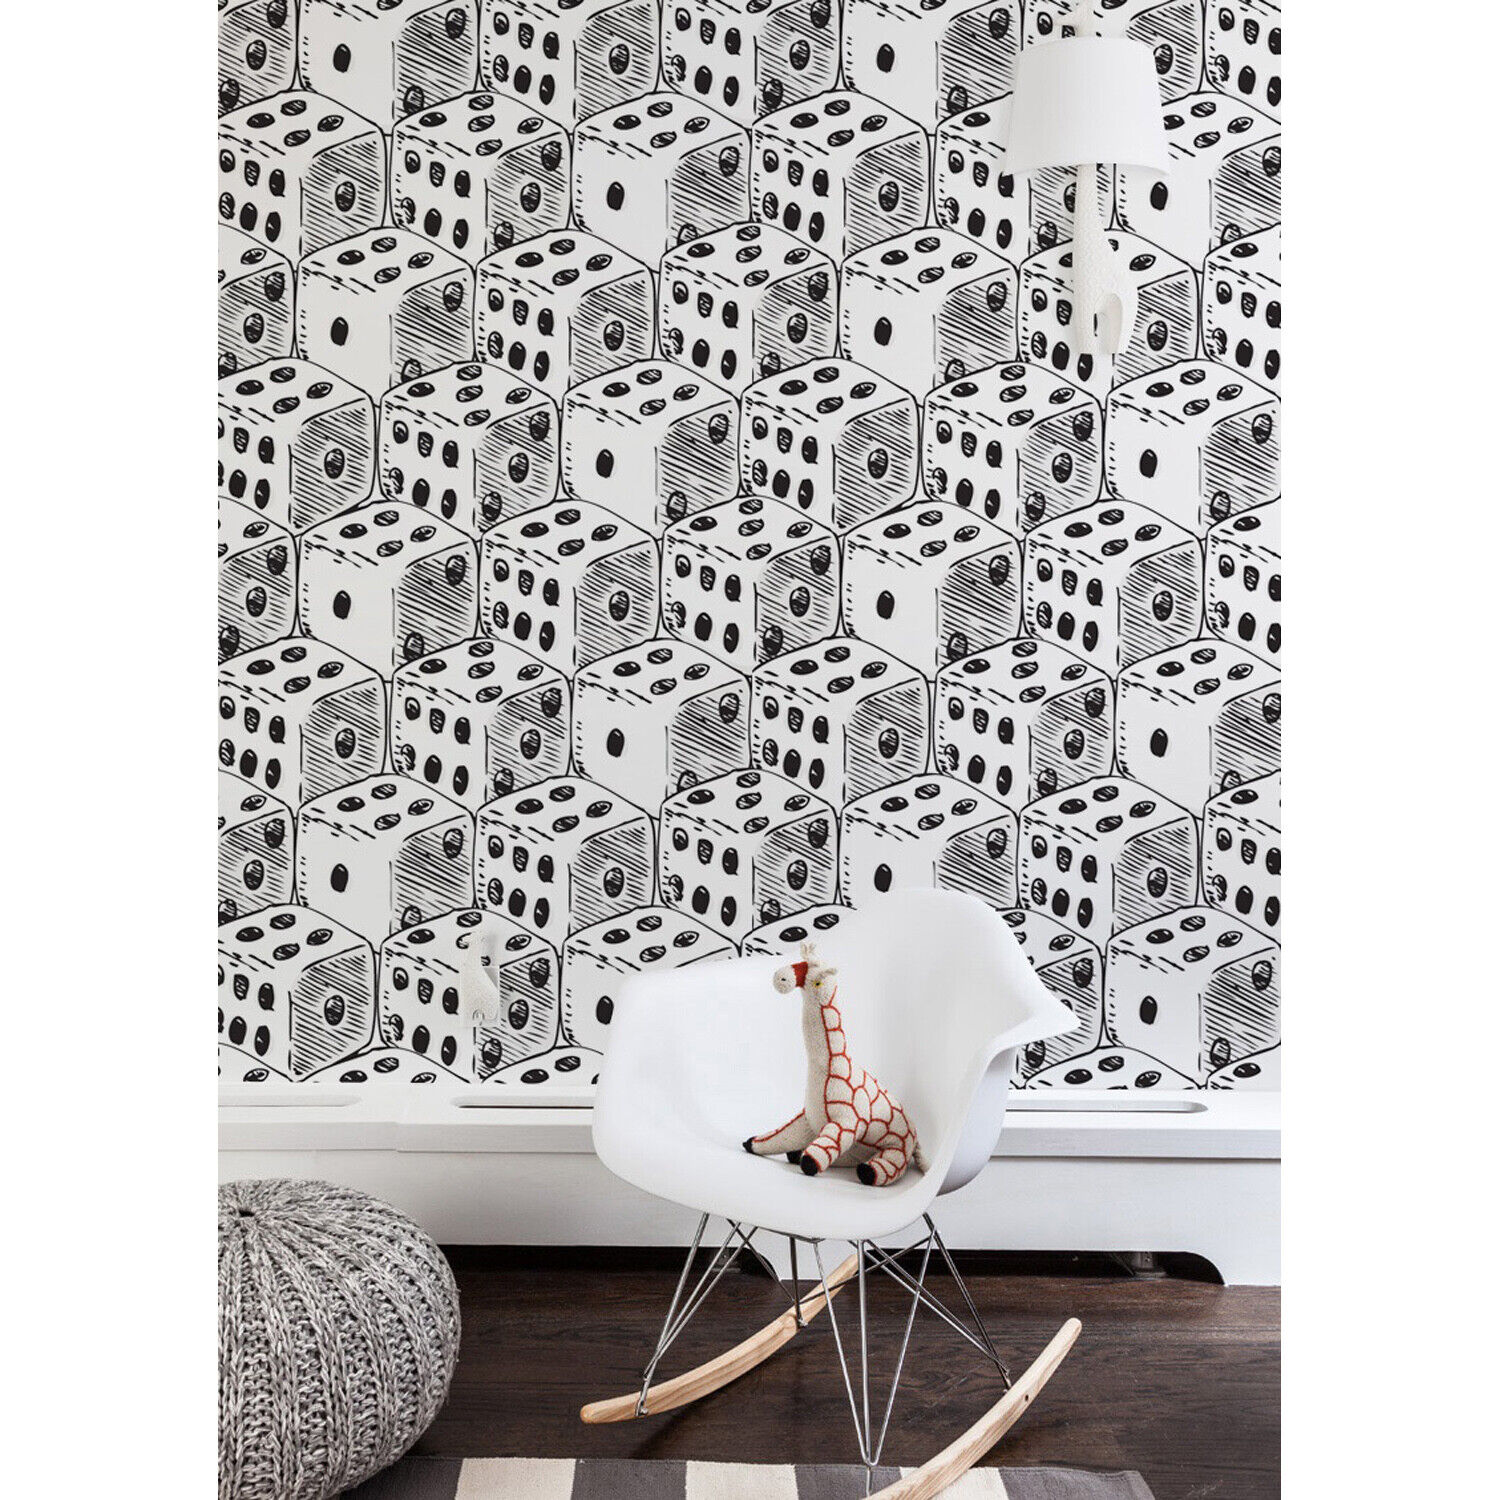 Non-woven wallpaper Dot Cubes vintage retro nursery decal large  adhesive Weiß